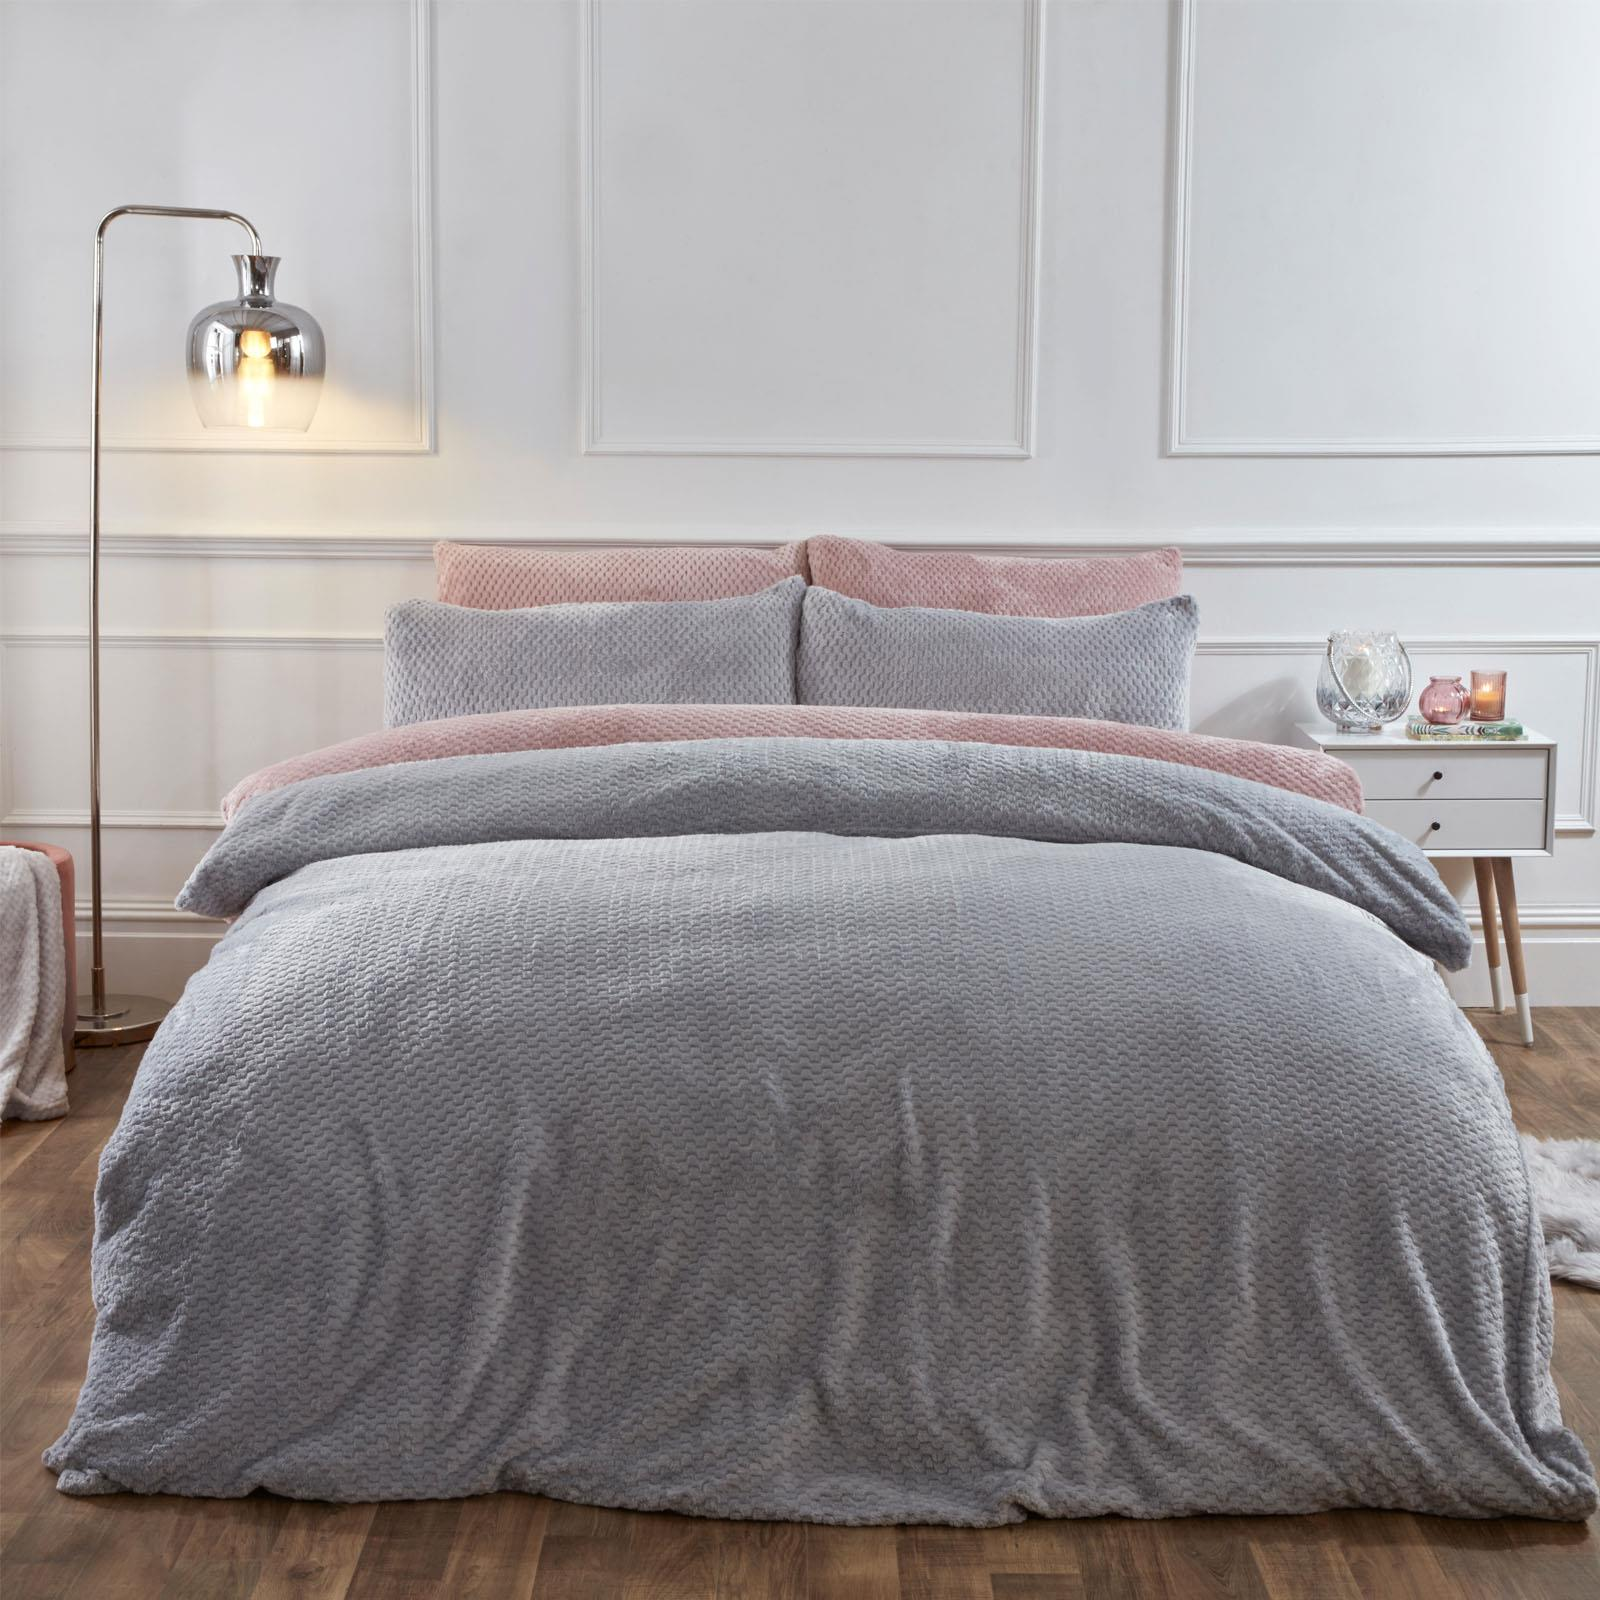 Brentfords-Warm-Waffle-Fleece-Duvet-Cover-with-Pillowcase-Soft-Cosy-Bedding-Set thumbnail 15